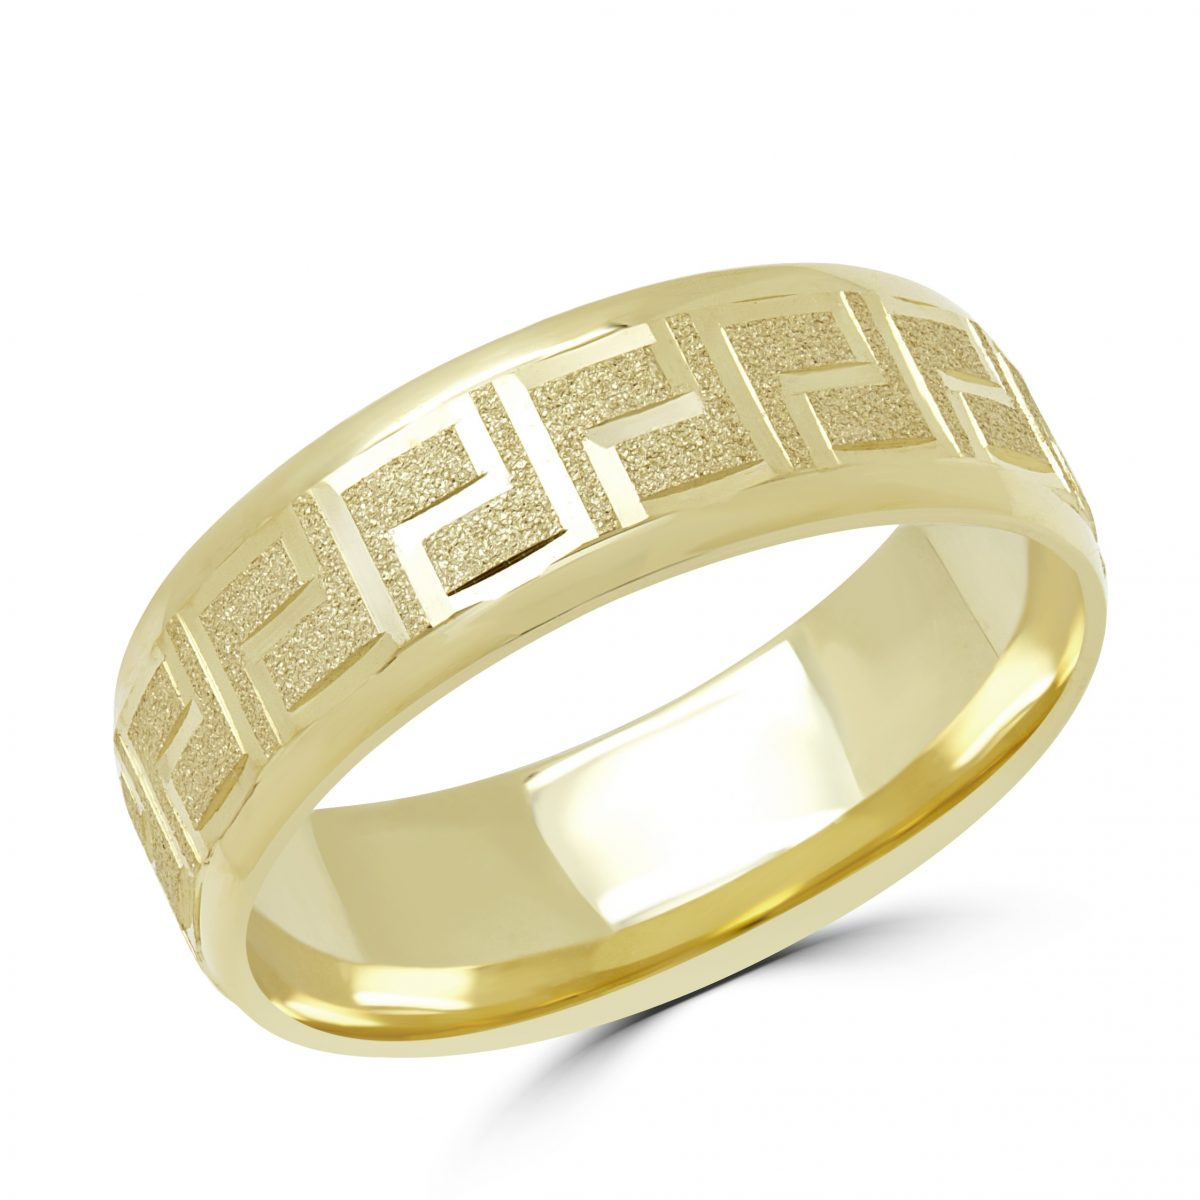 Home Rings Gold Wedding Bands Greek Key